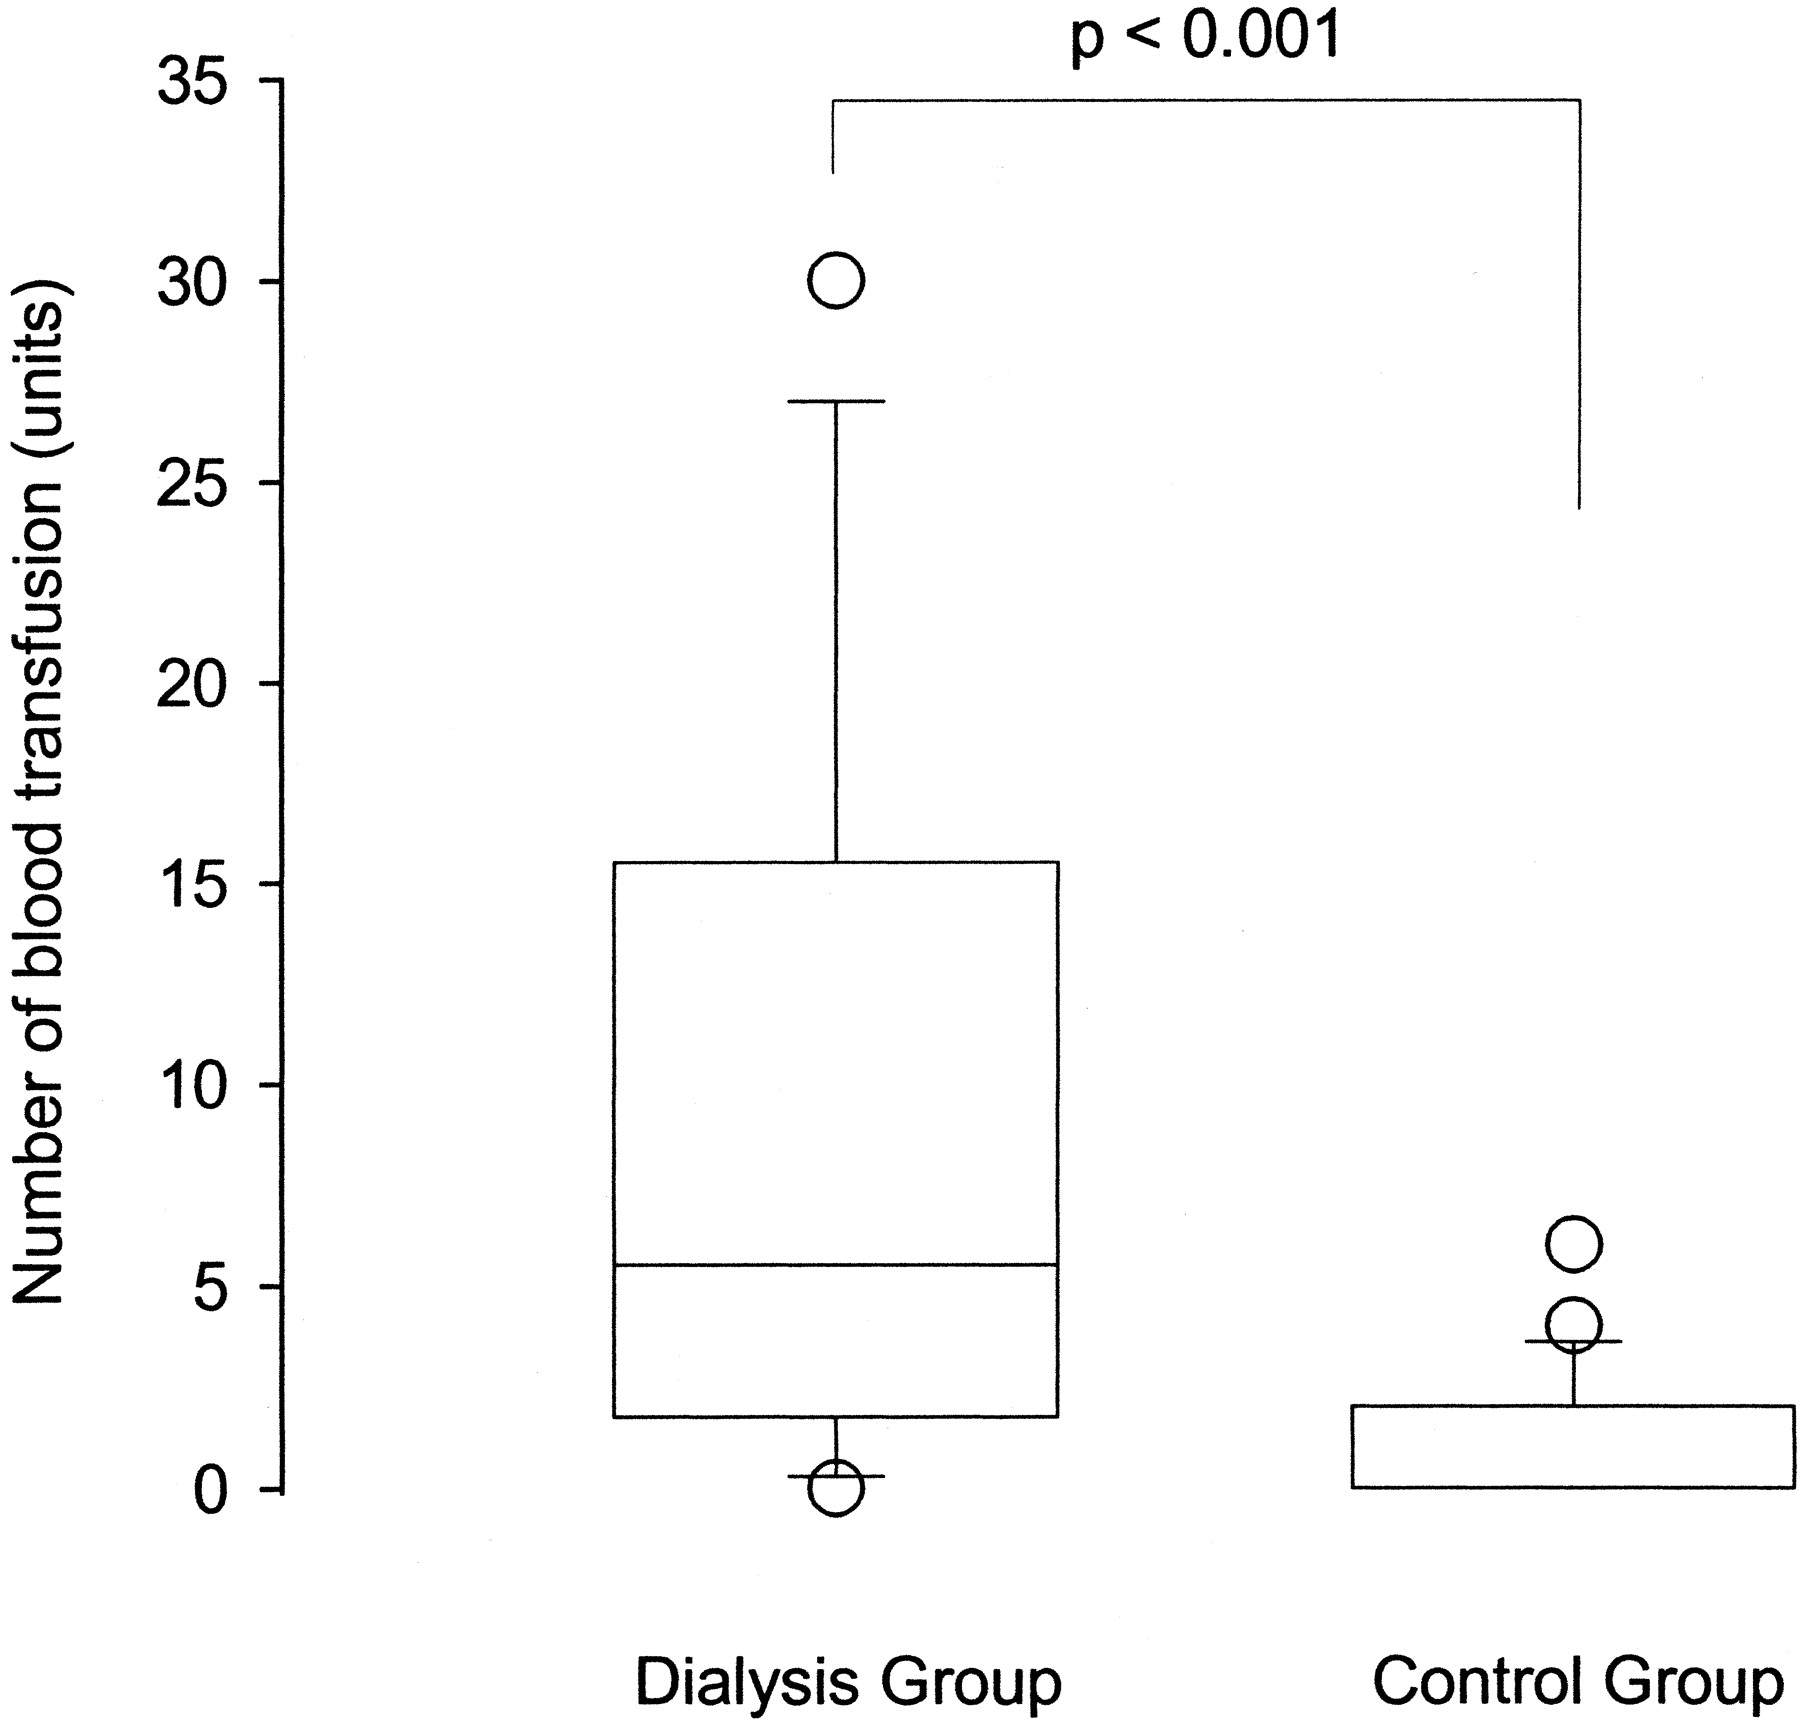 Severe Acute Respiratory Syndrome in Dialysis Patients | American